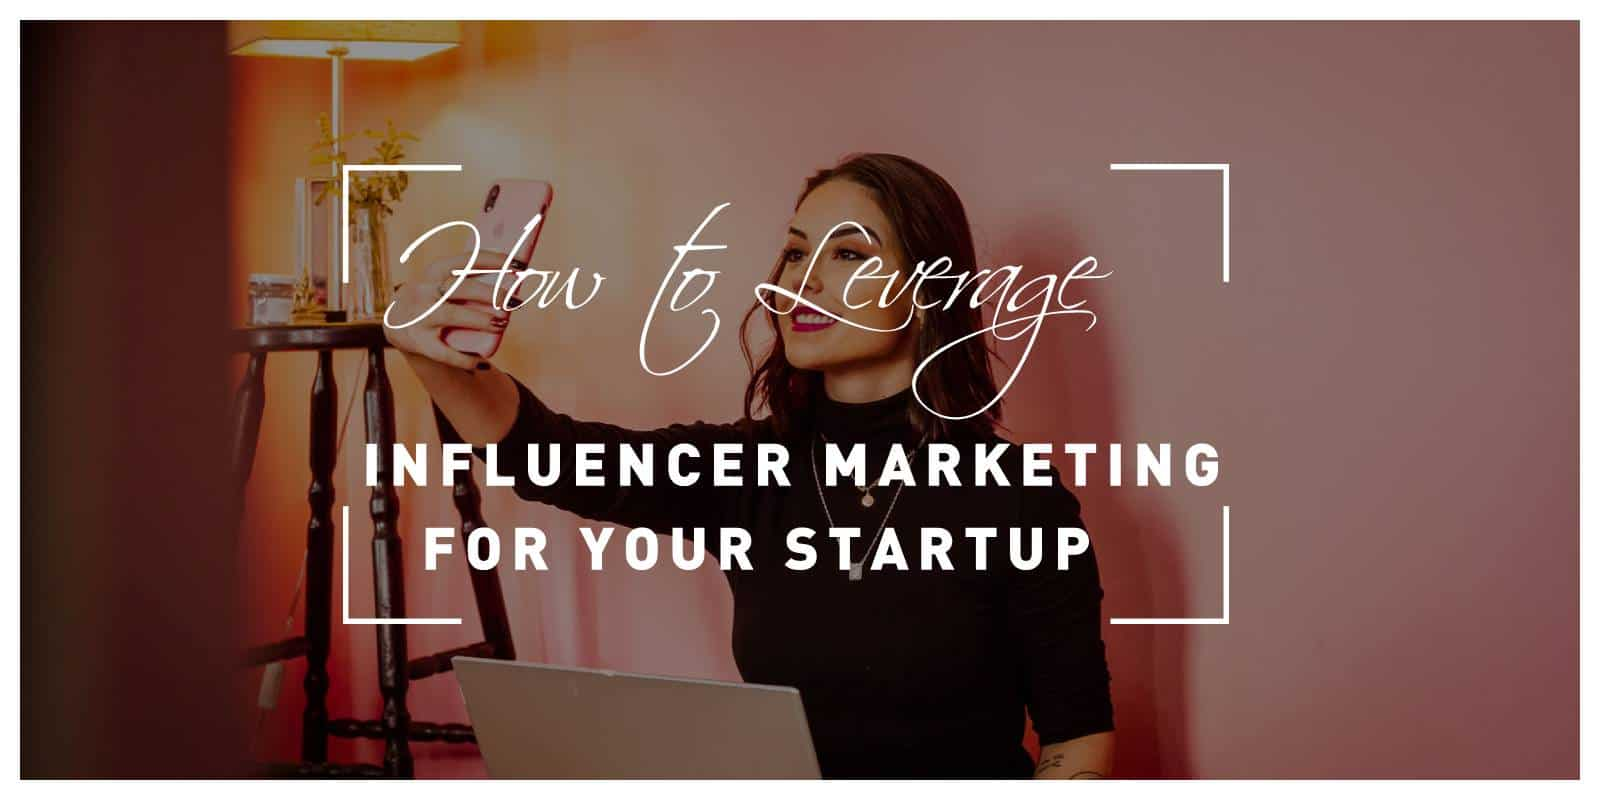 How to Leverage Influencer Marketing for Your Startup